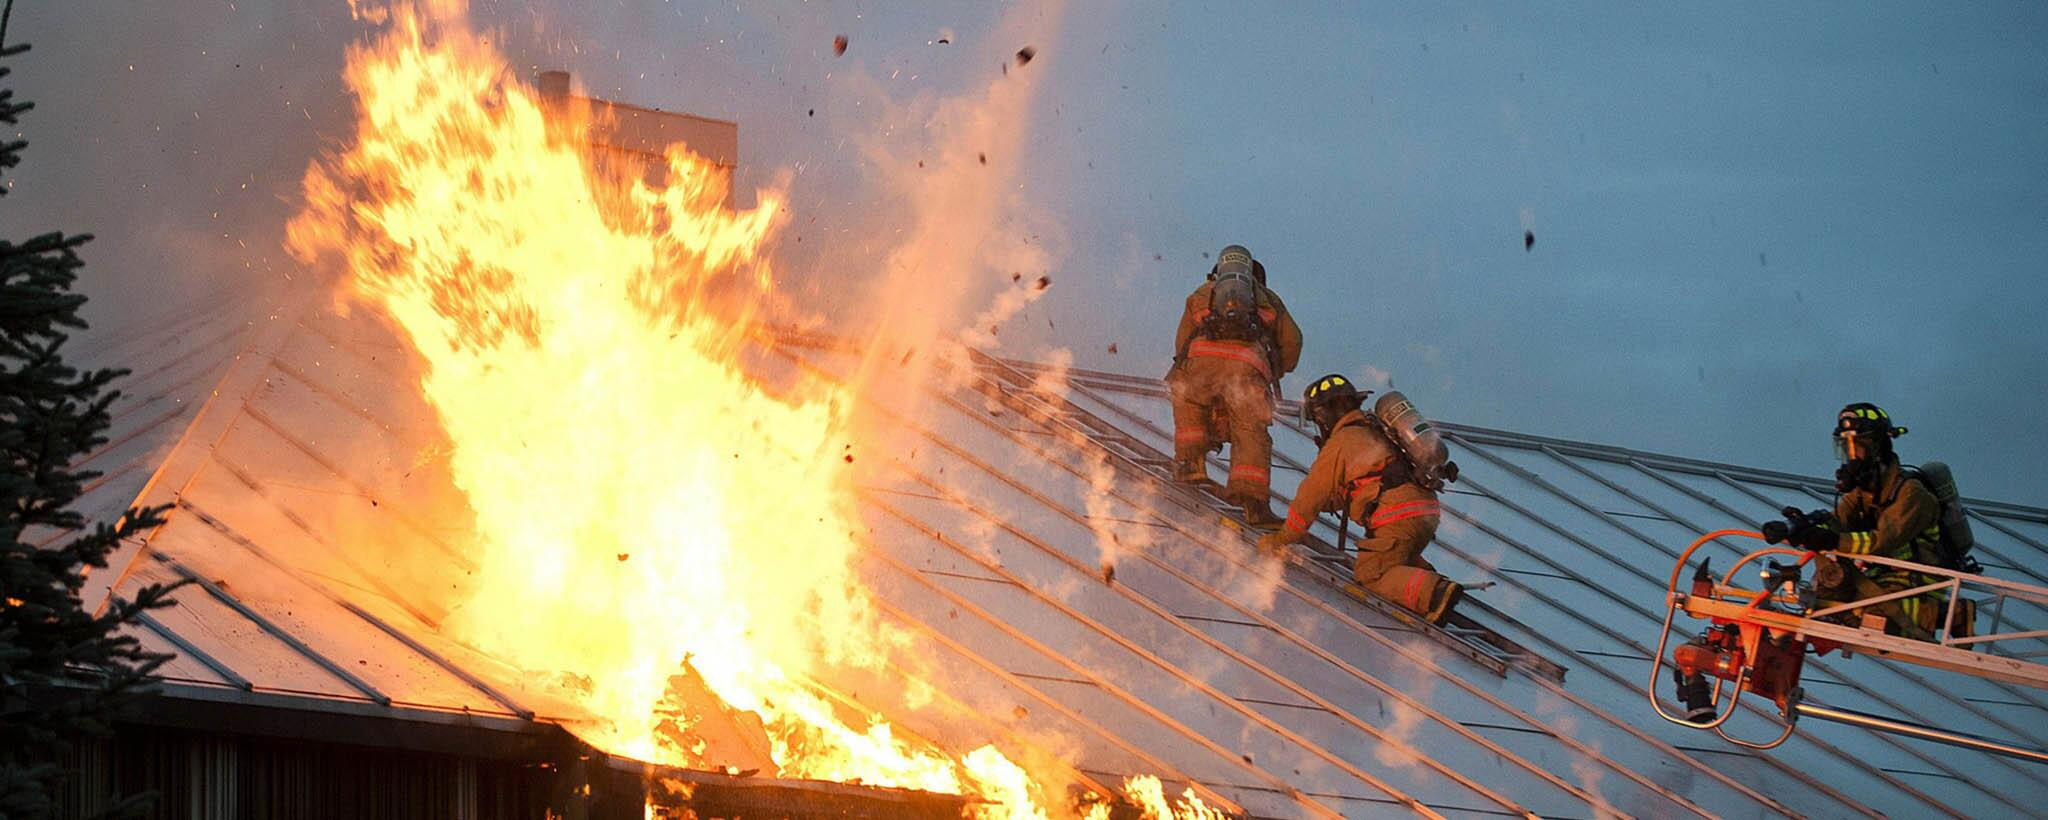 Image of firefighters on flaming roof